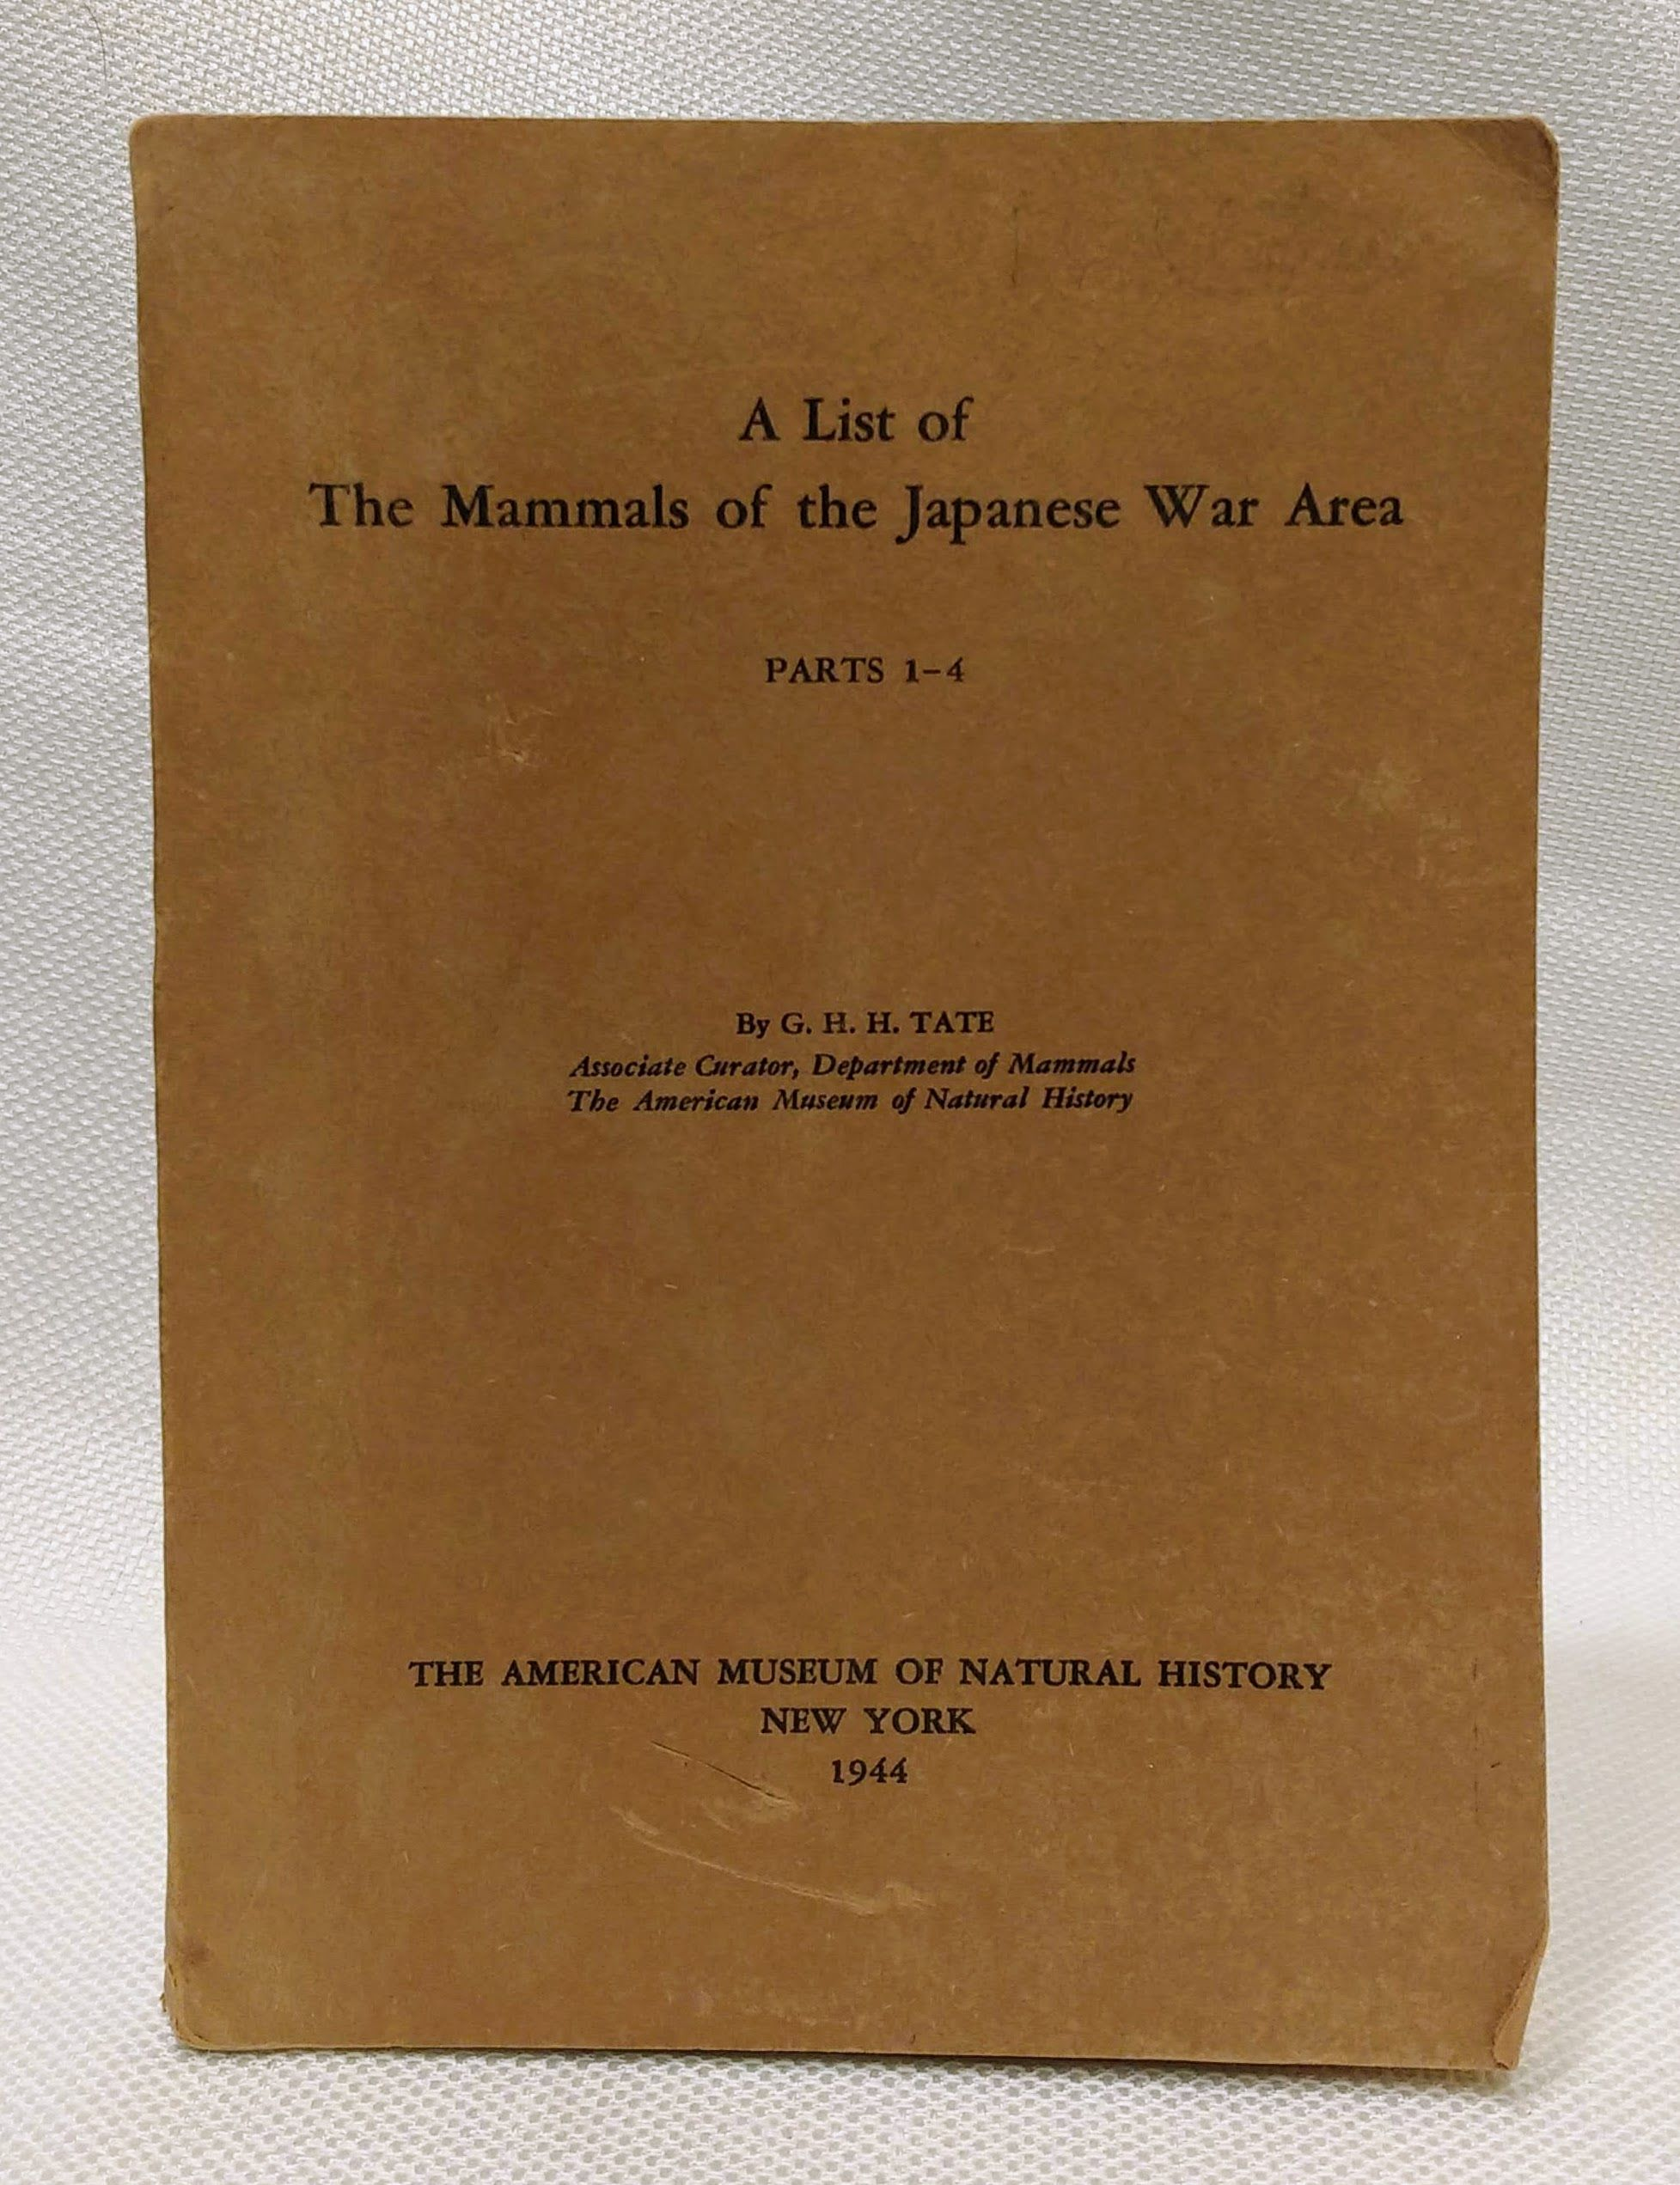 A LIST OF THE MAMMALS OF THE JAPANESE WAR AREA. PARTS I - 4., Tate, G.; Maps [Illustrator]